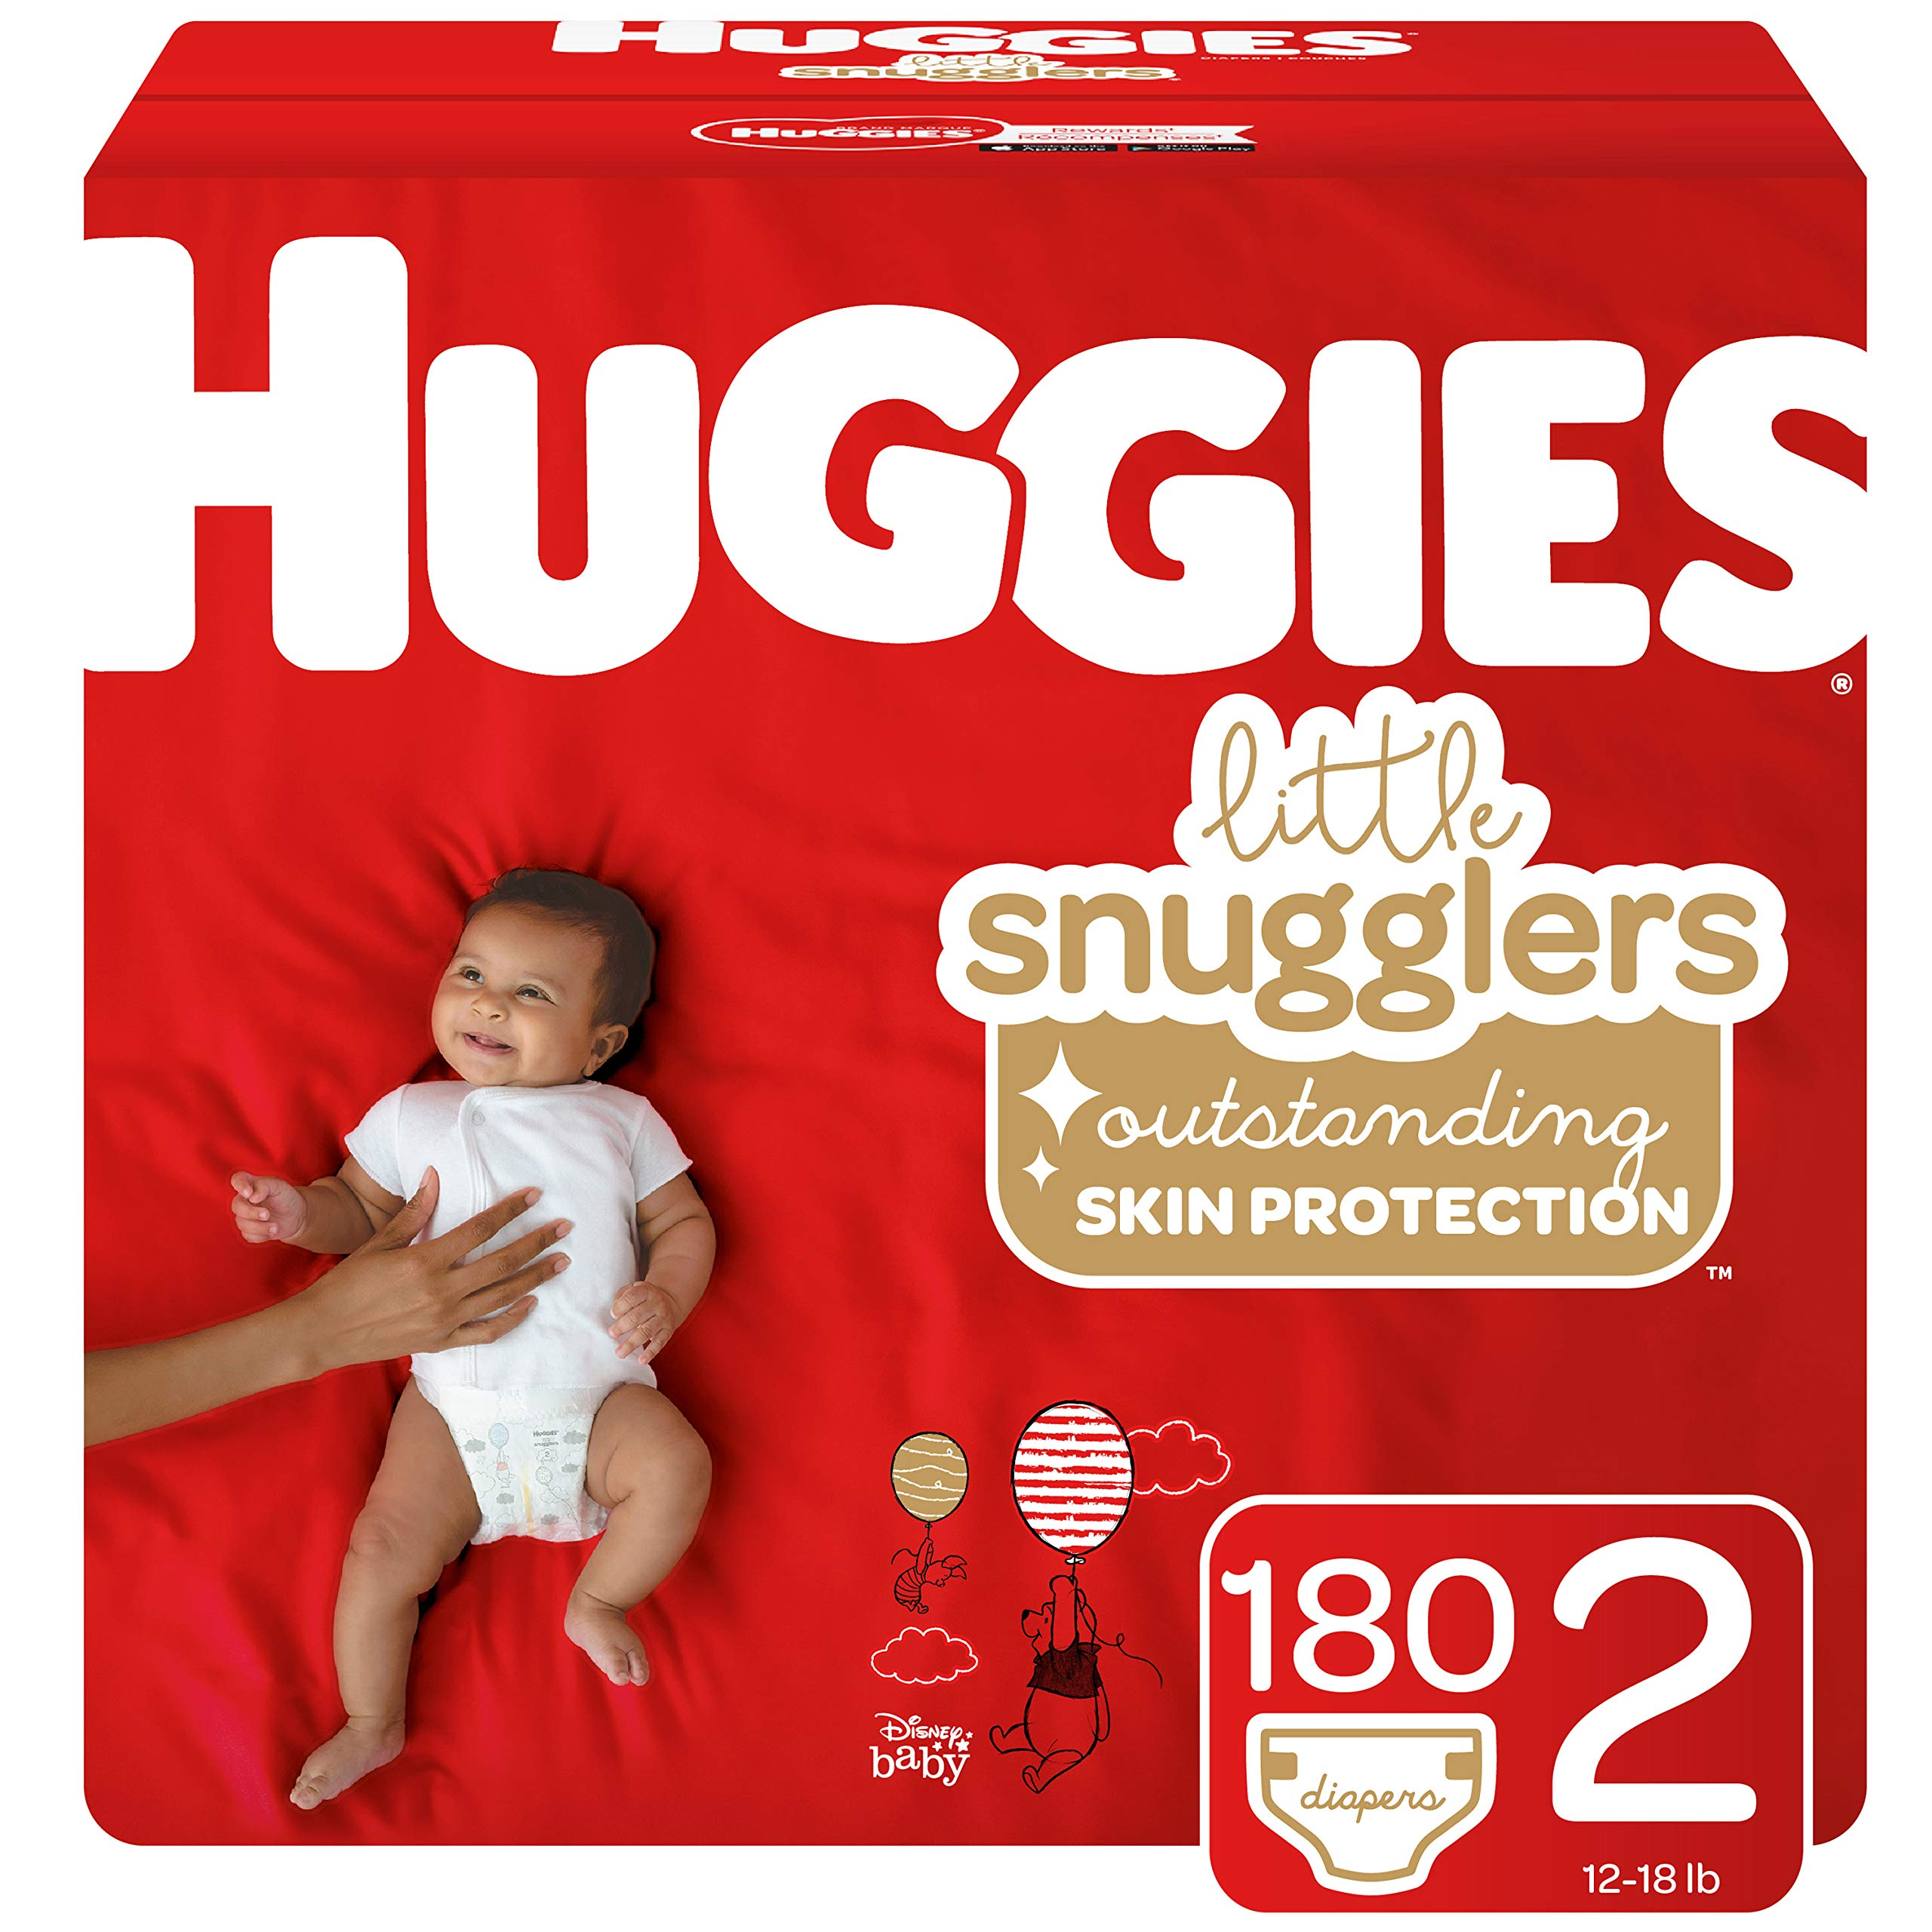 Huggies Little Snugglers Baby Diapers, Size 2 (up to 12-18 lb.), Economy Plus Pack, 180 Count (Packaging May Vary) by HUGGIES